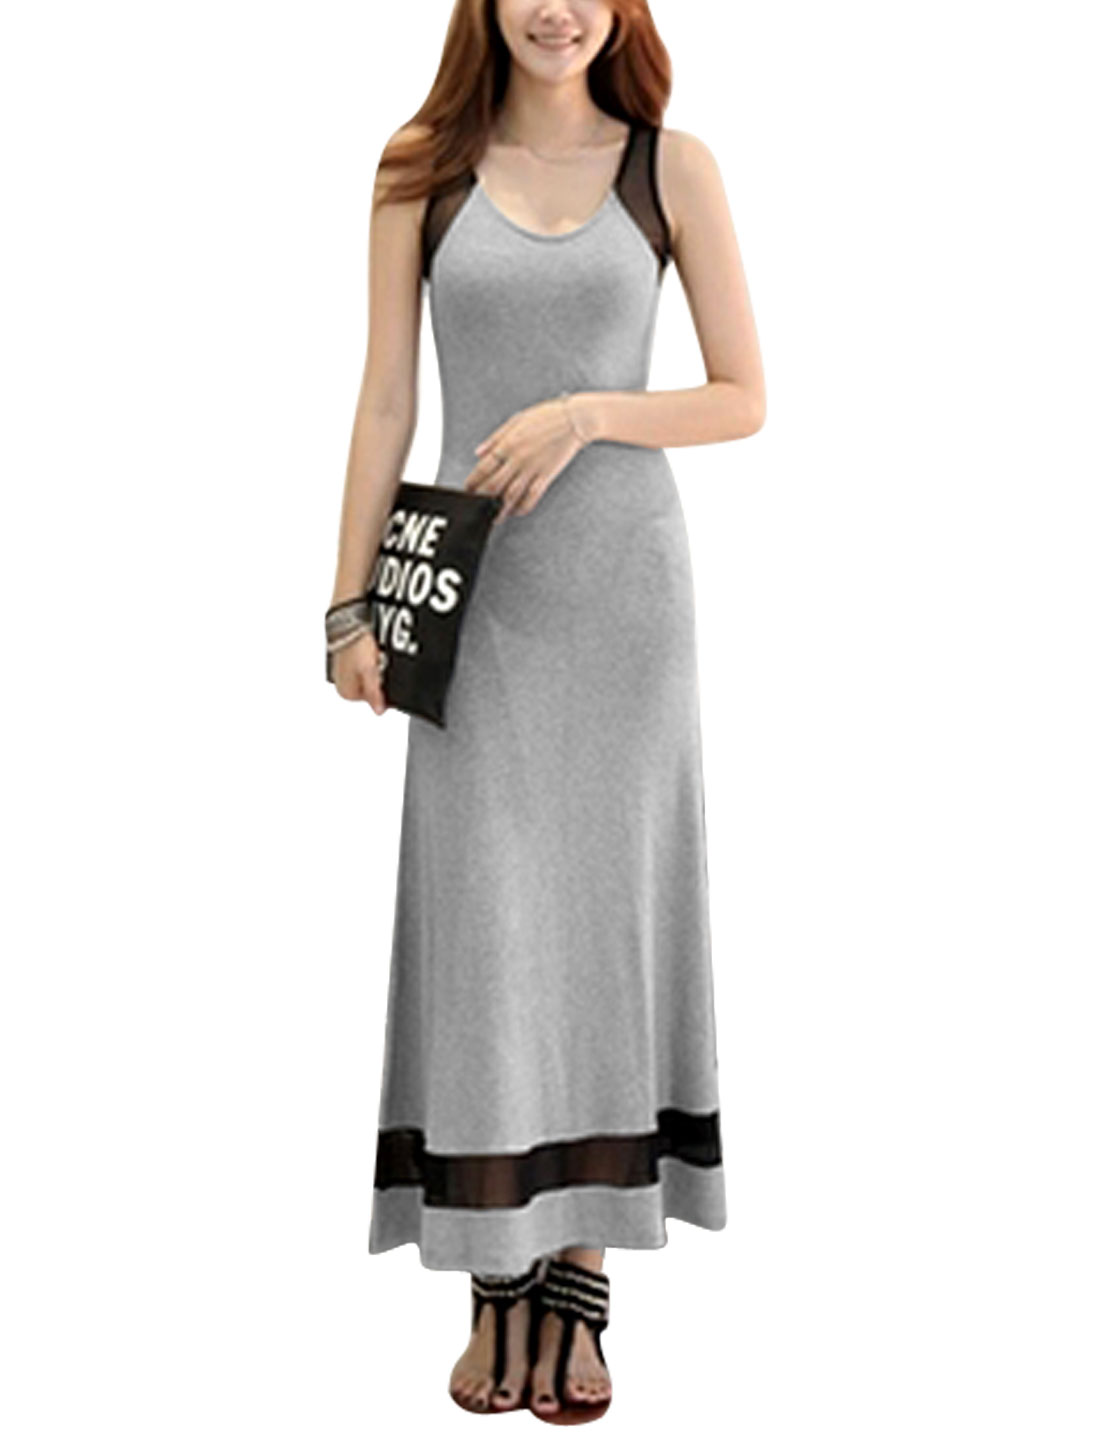 Ladies Sleeveless Round Neck Mesh Panel Contrast Color Maxi Dress Light Gray M